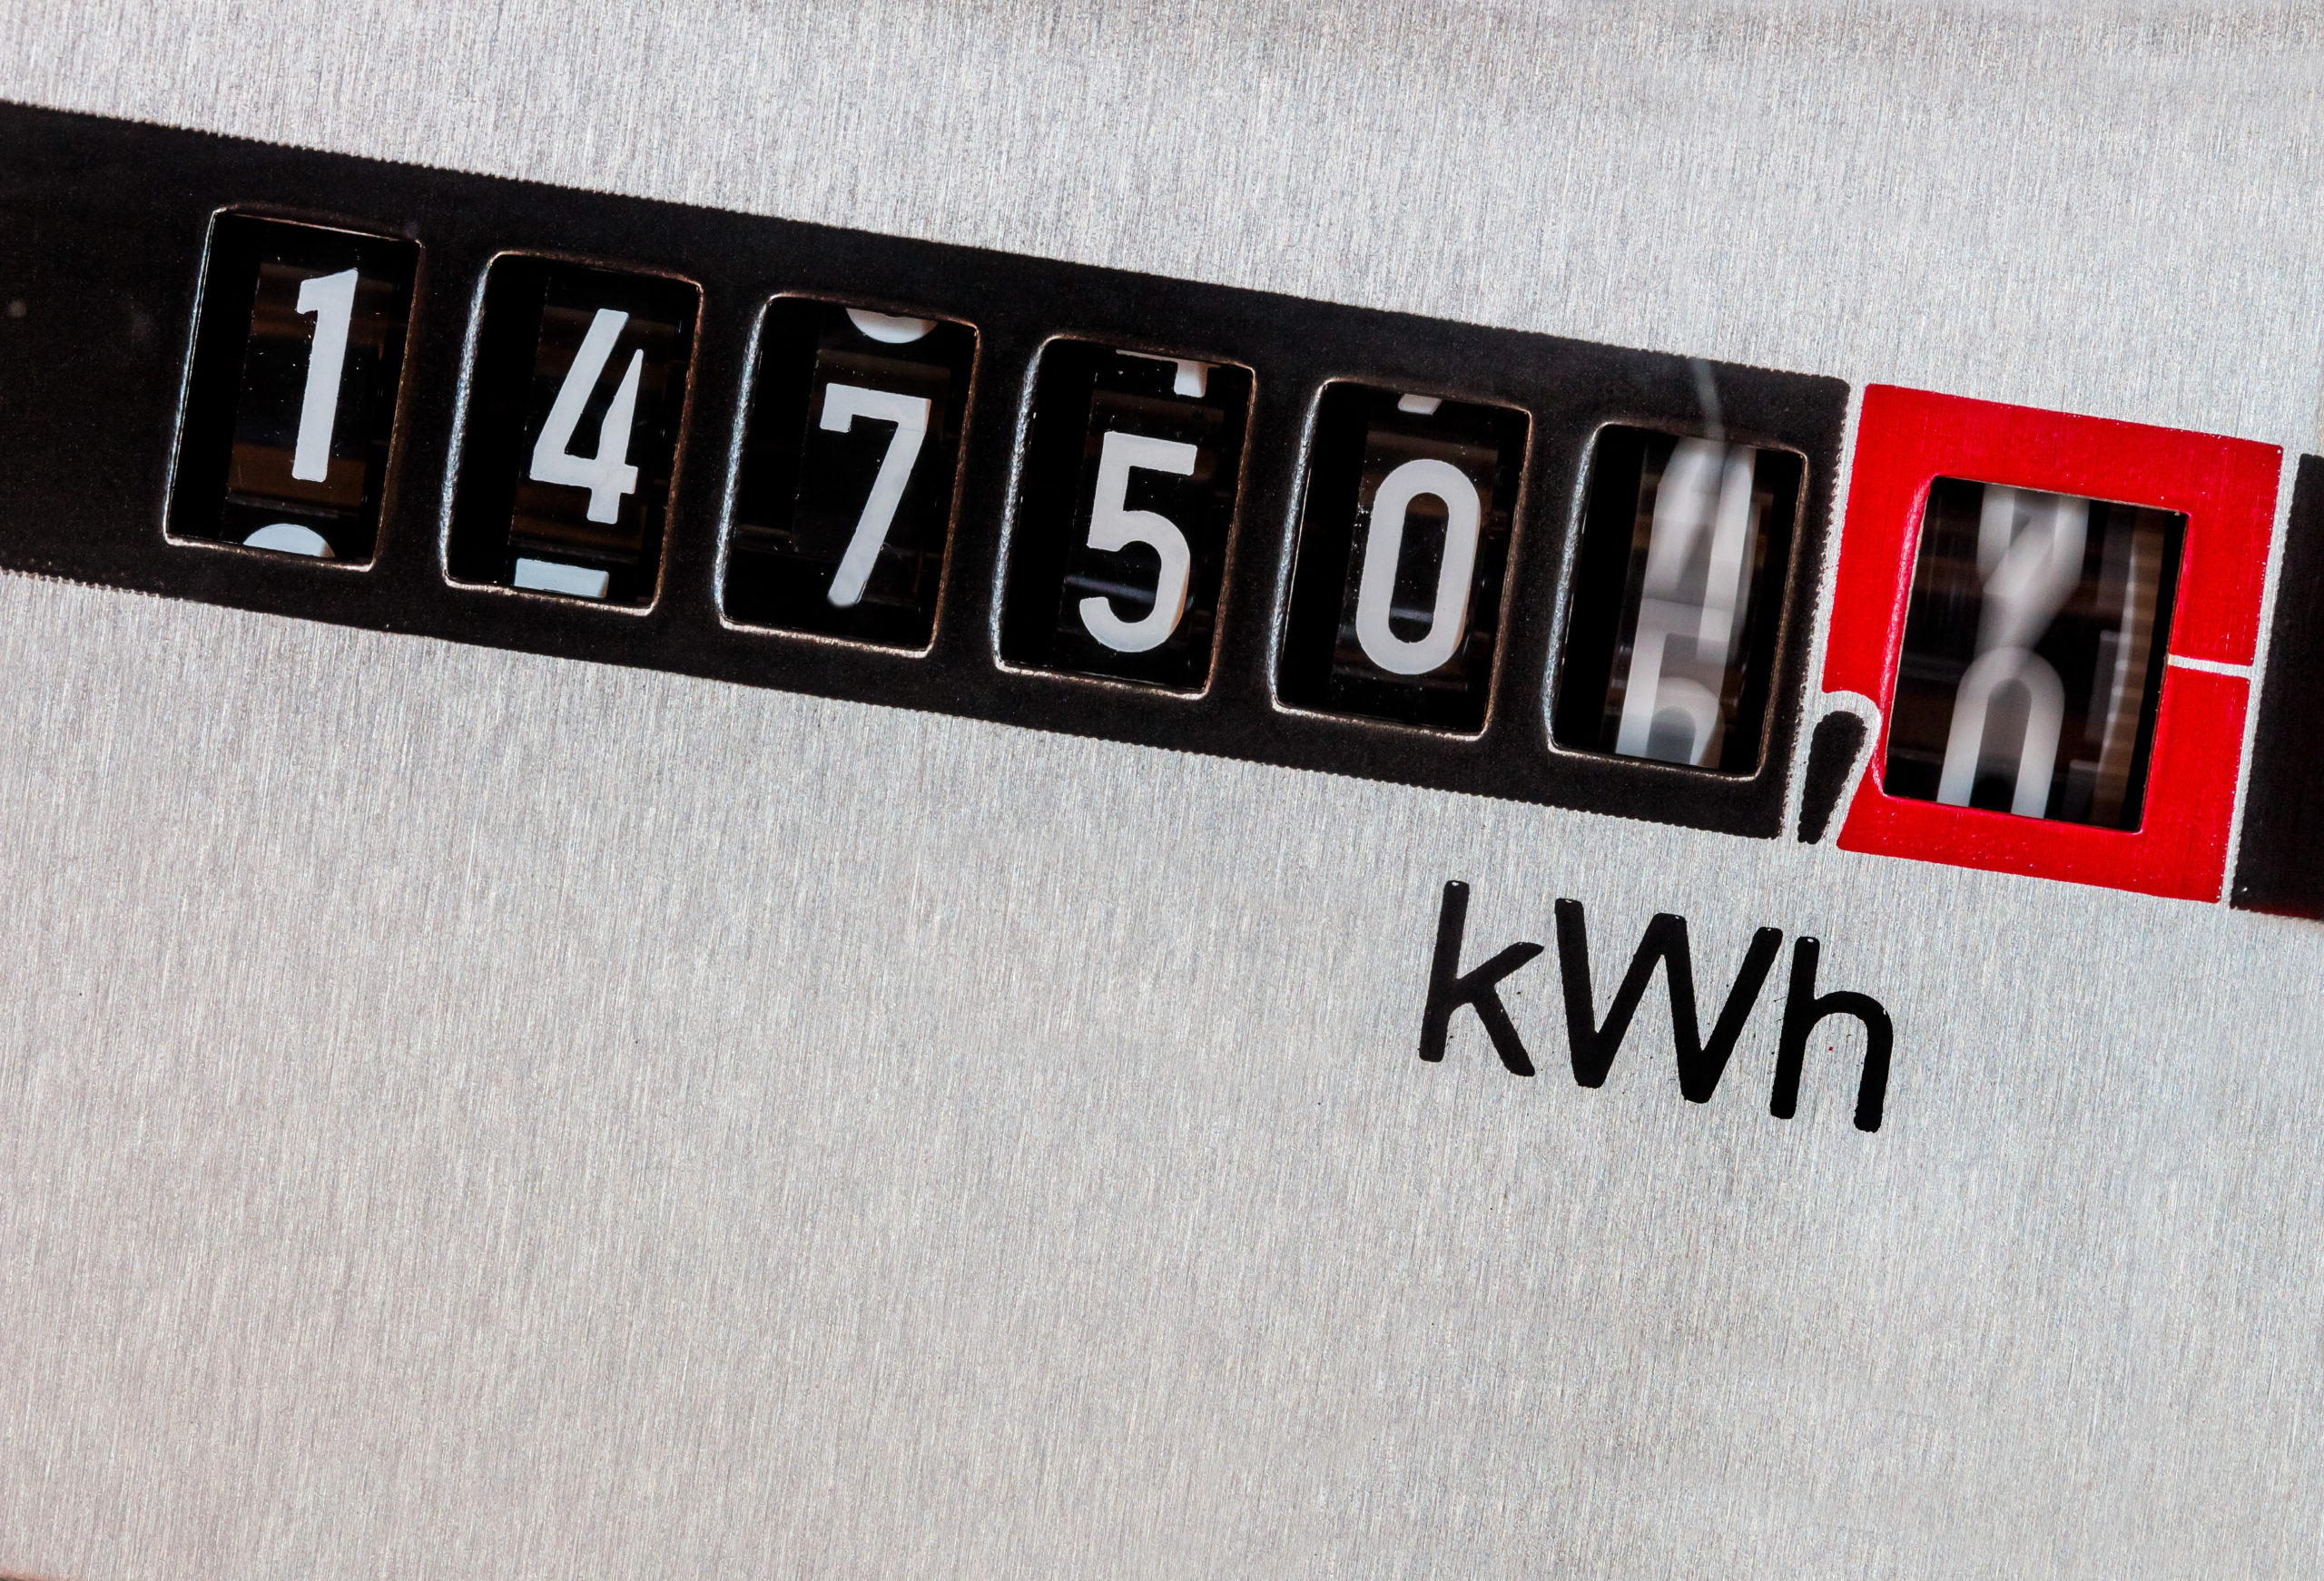 Blog: Electricity demand during week one of COVID-19 lockdown